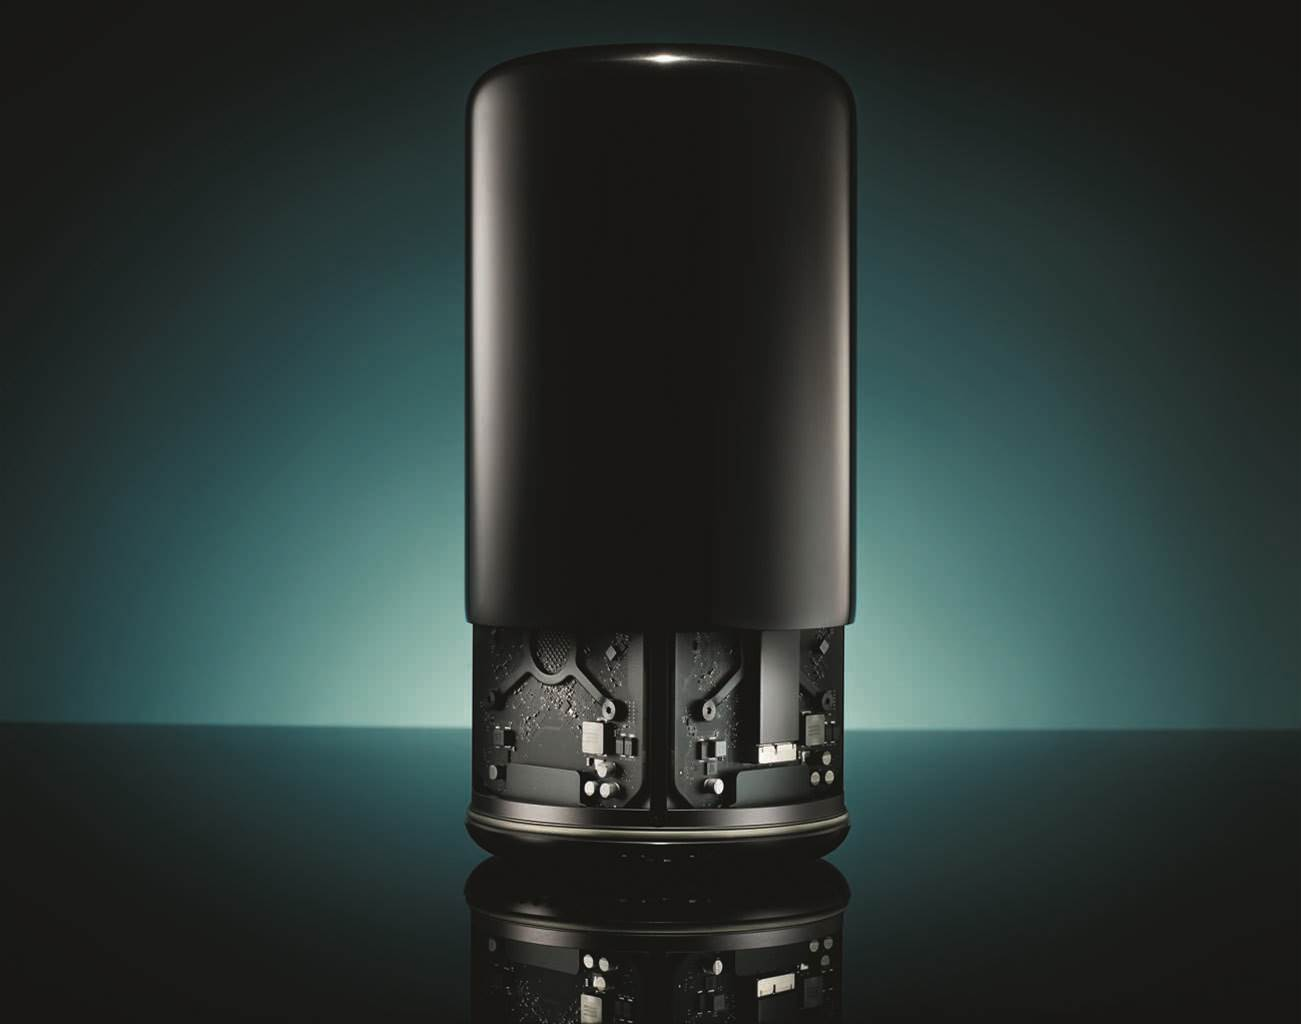 Review: Apple Mac Pro (2014)